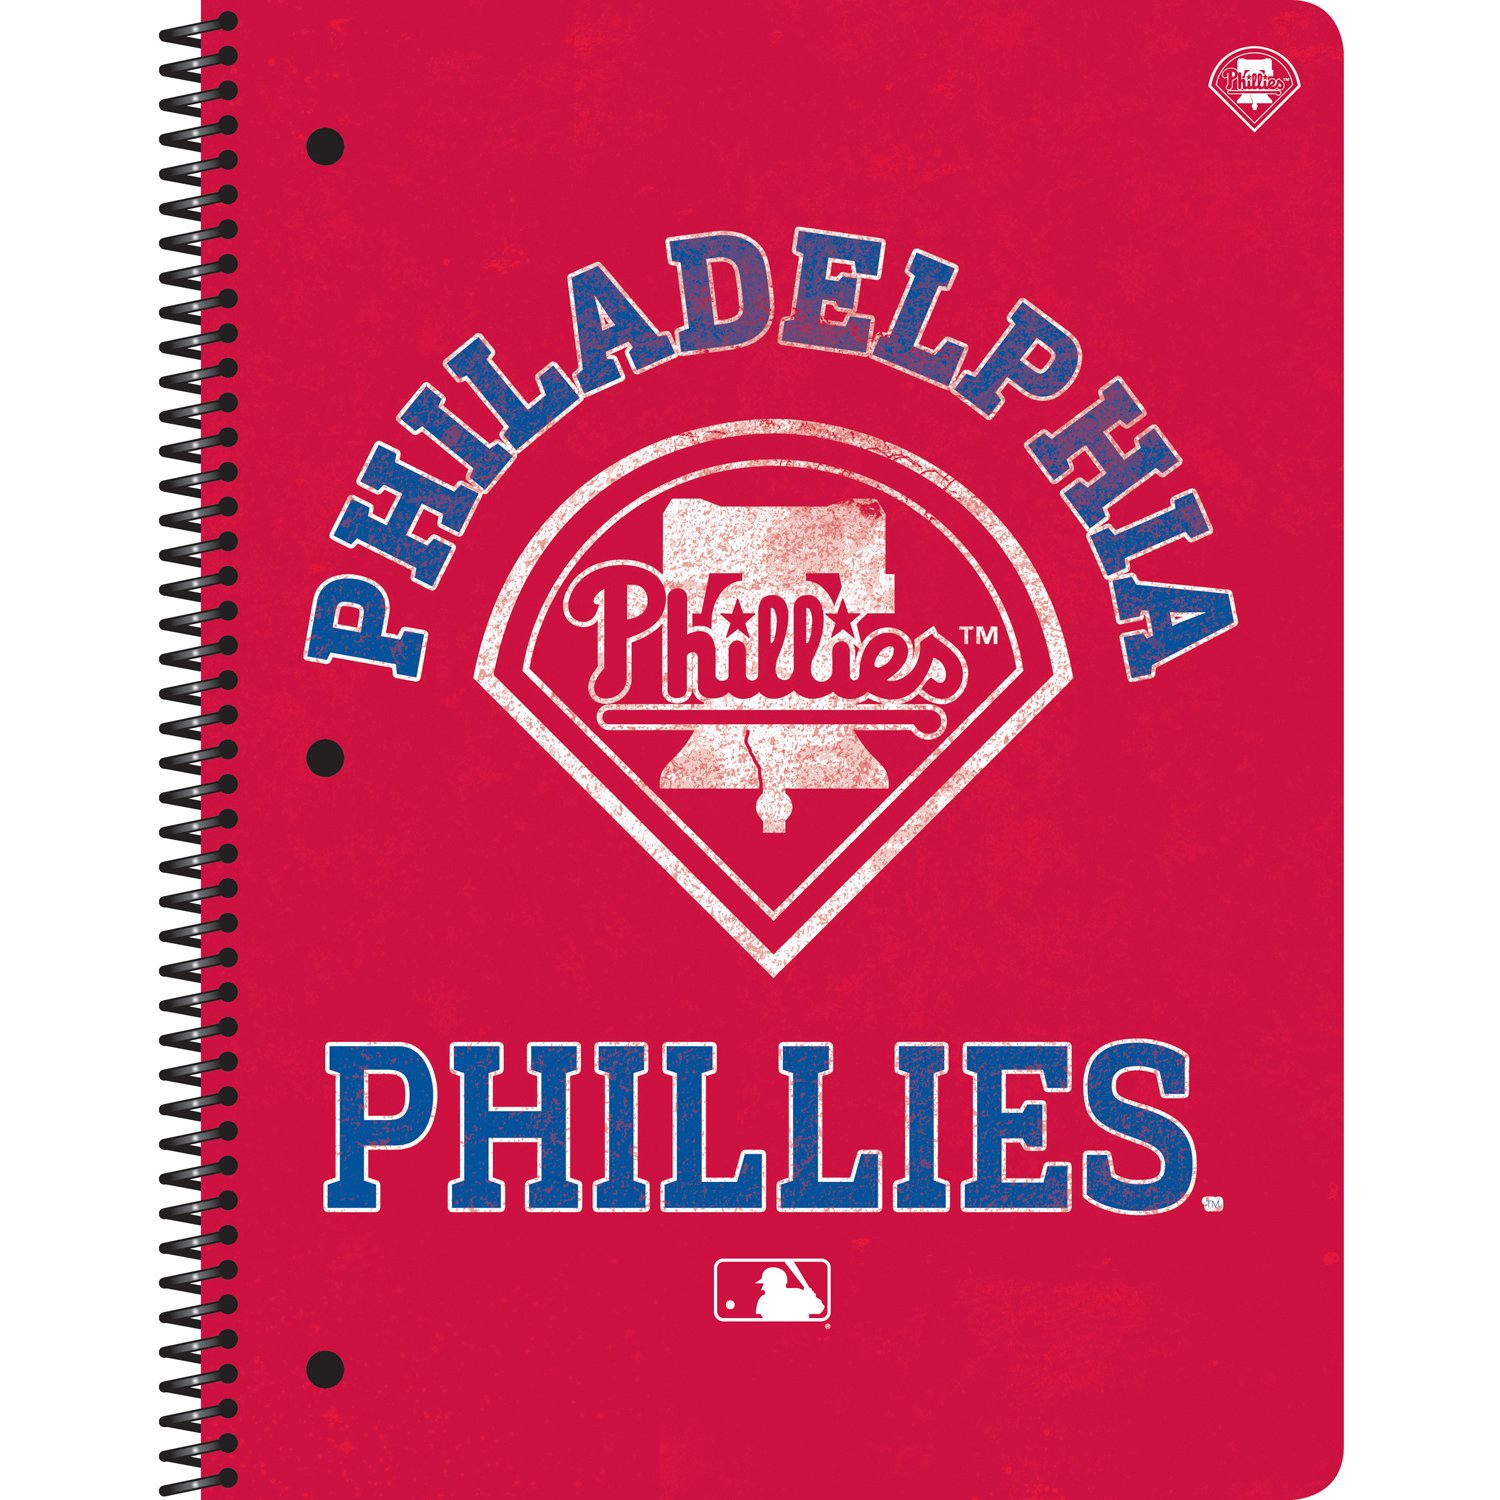 CRG C.R. Gibson 1-Subject Spiral Notebook, Vintage Philadelphia Phillies (M943308WM)